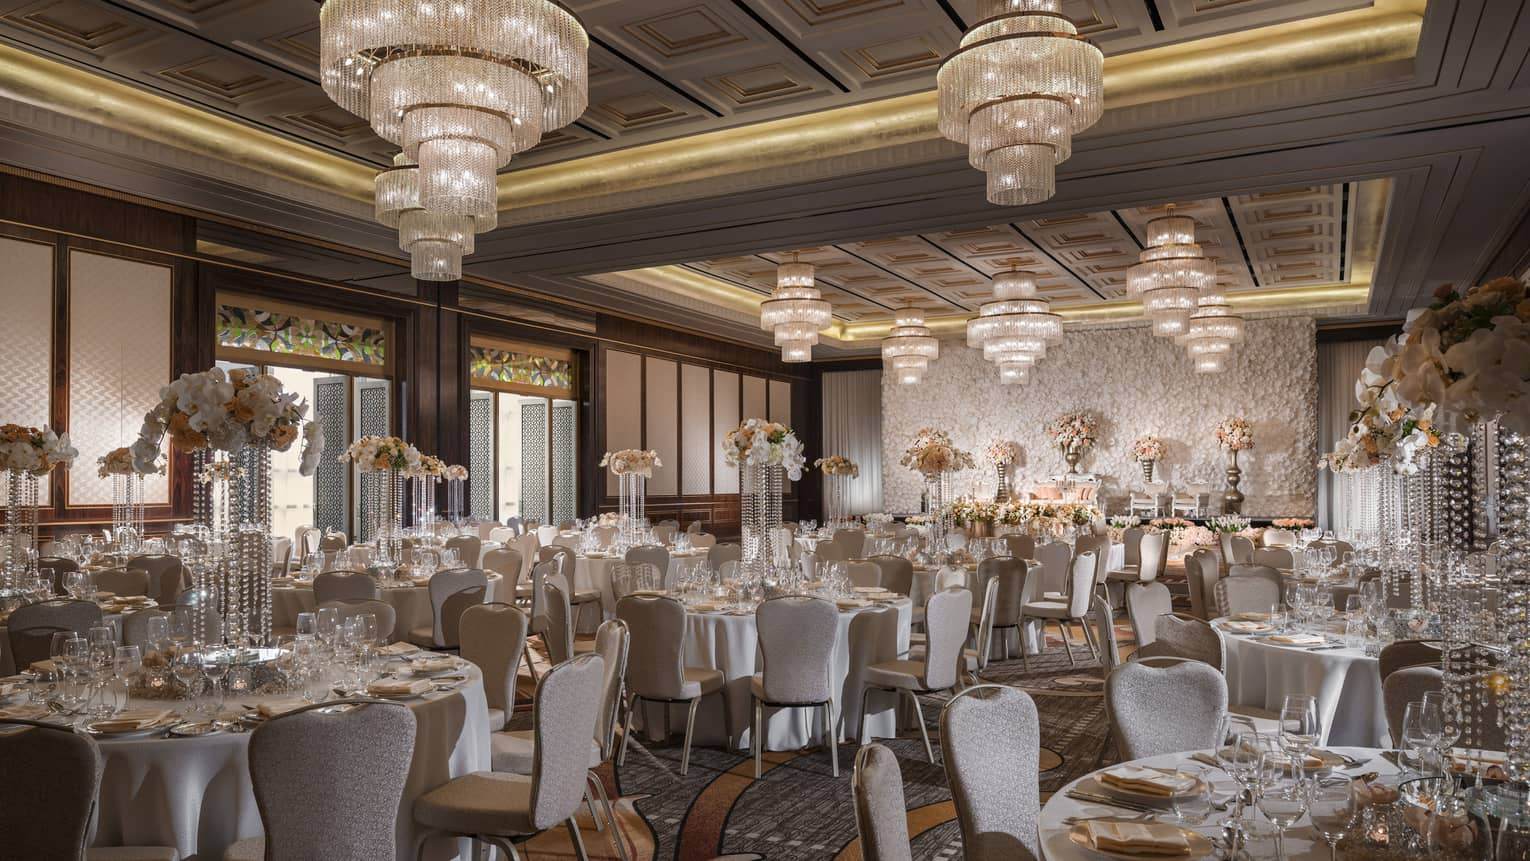 Large crystal chandeliers hang over round banquet tables in ballroom